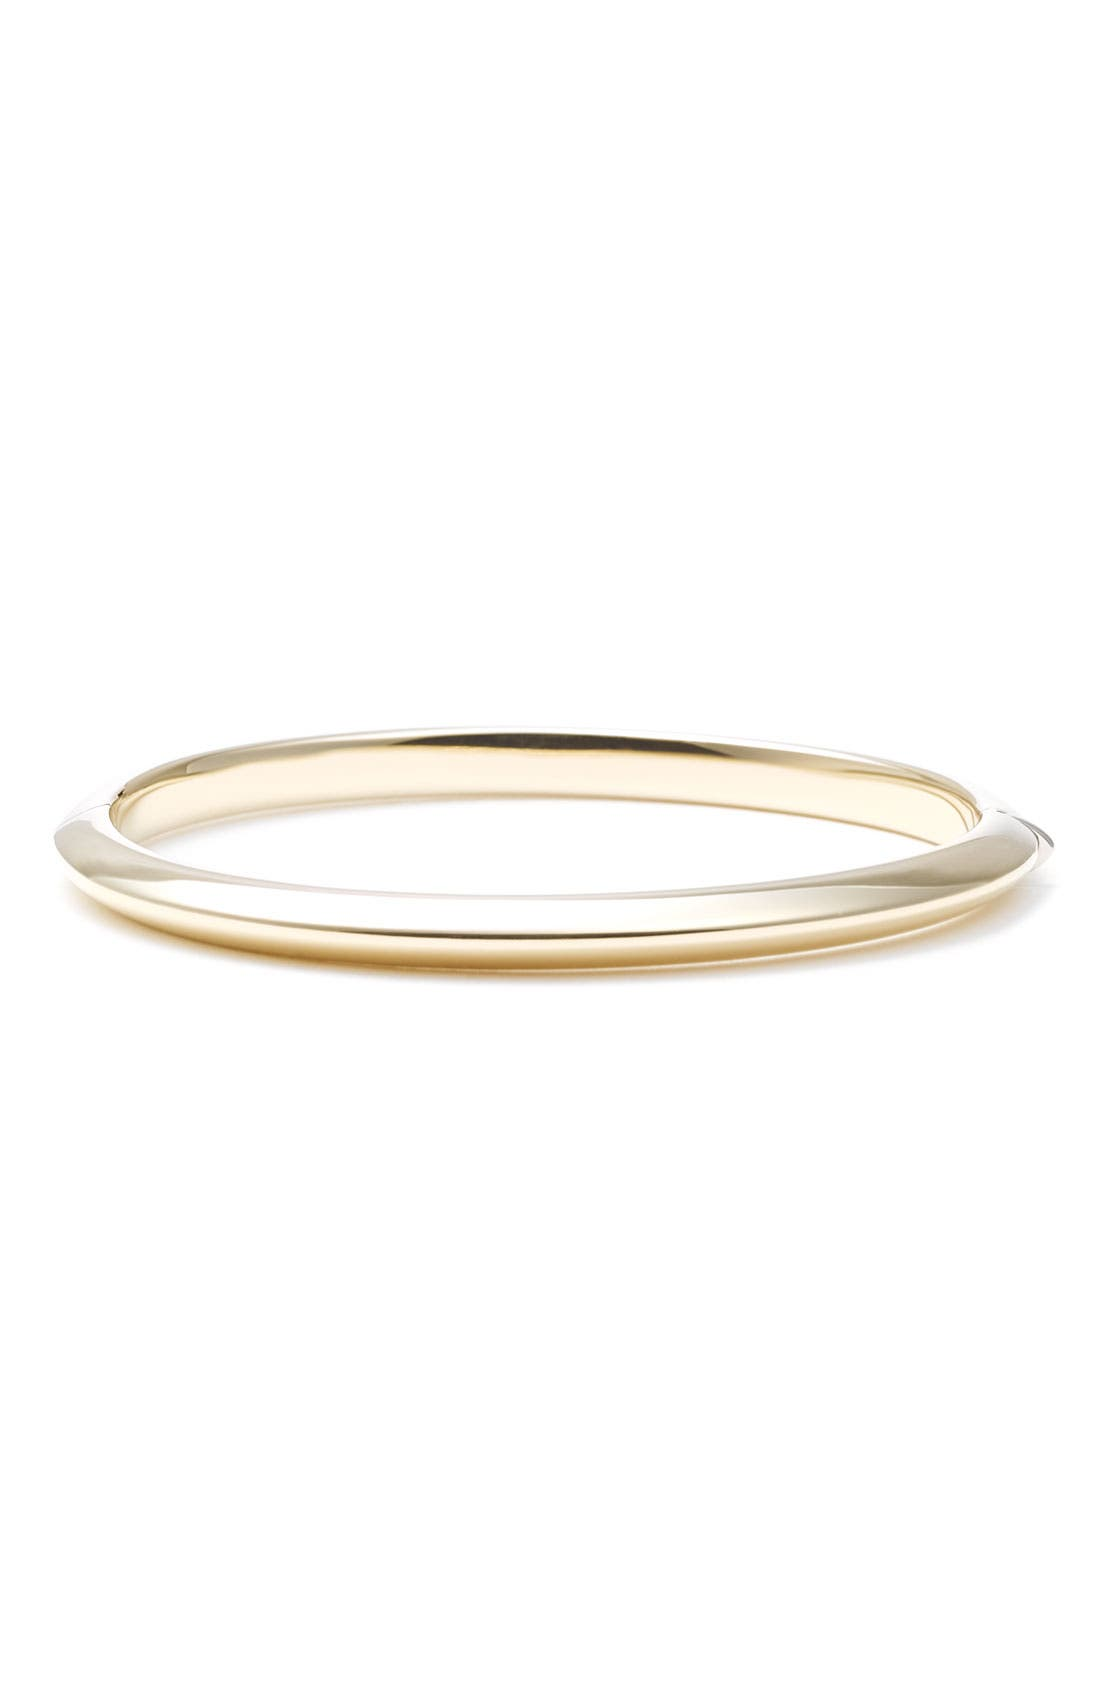 'Knife Edge' Gold Bangle,                             Main thumbnail 1, color,                             700